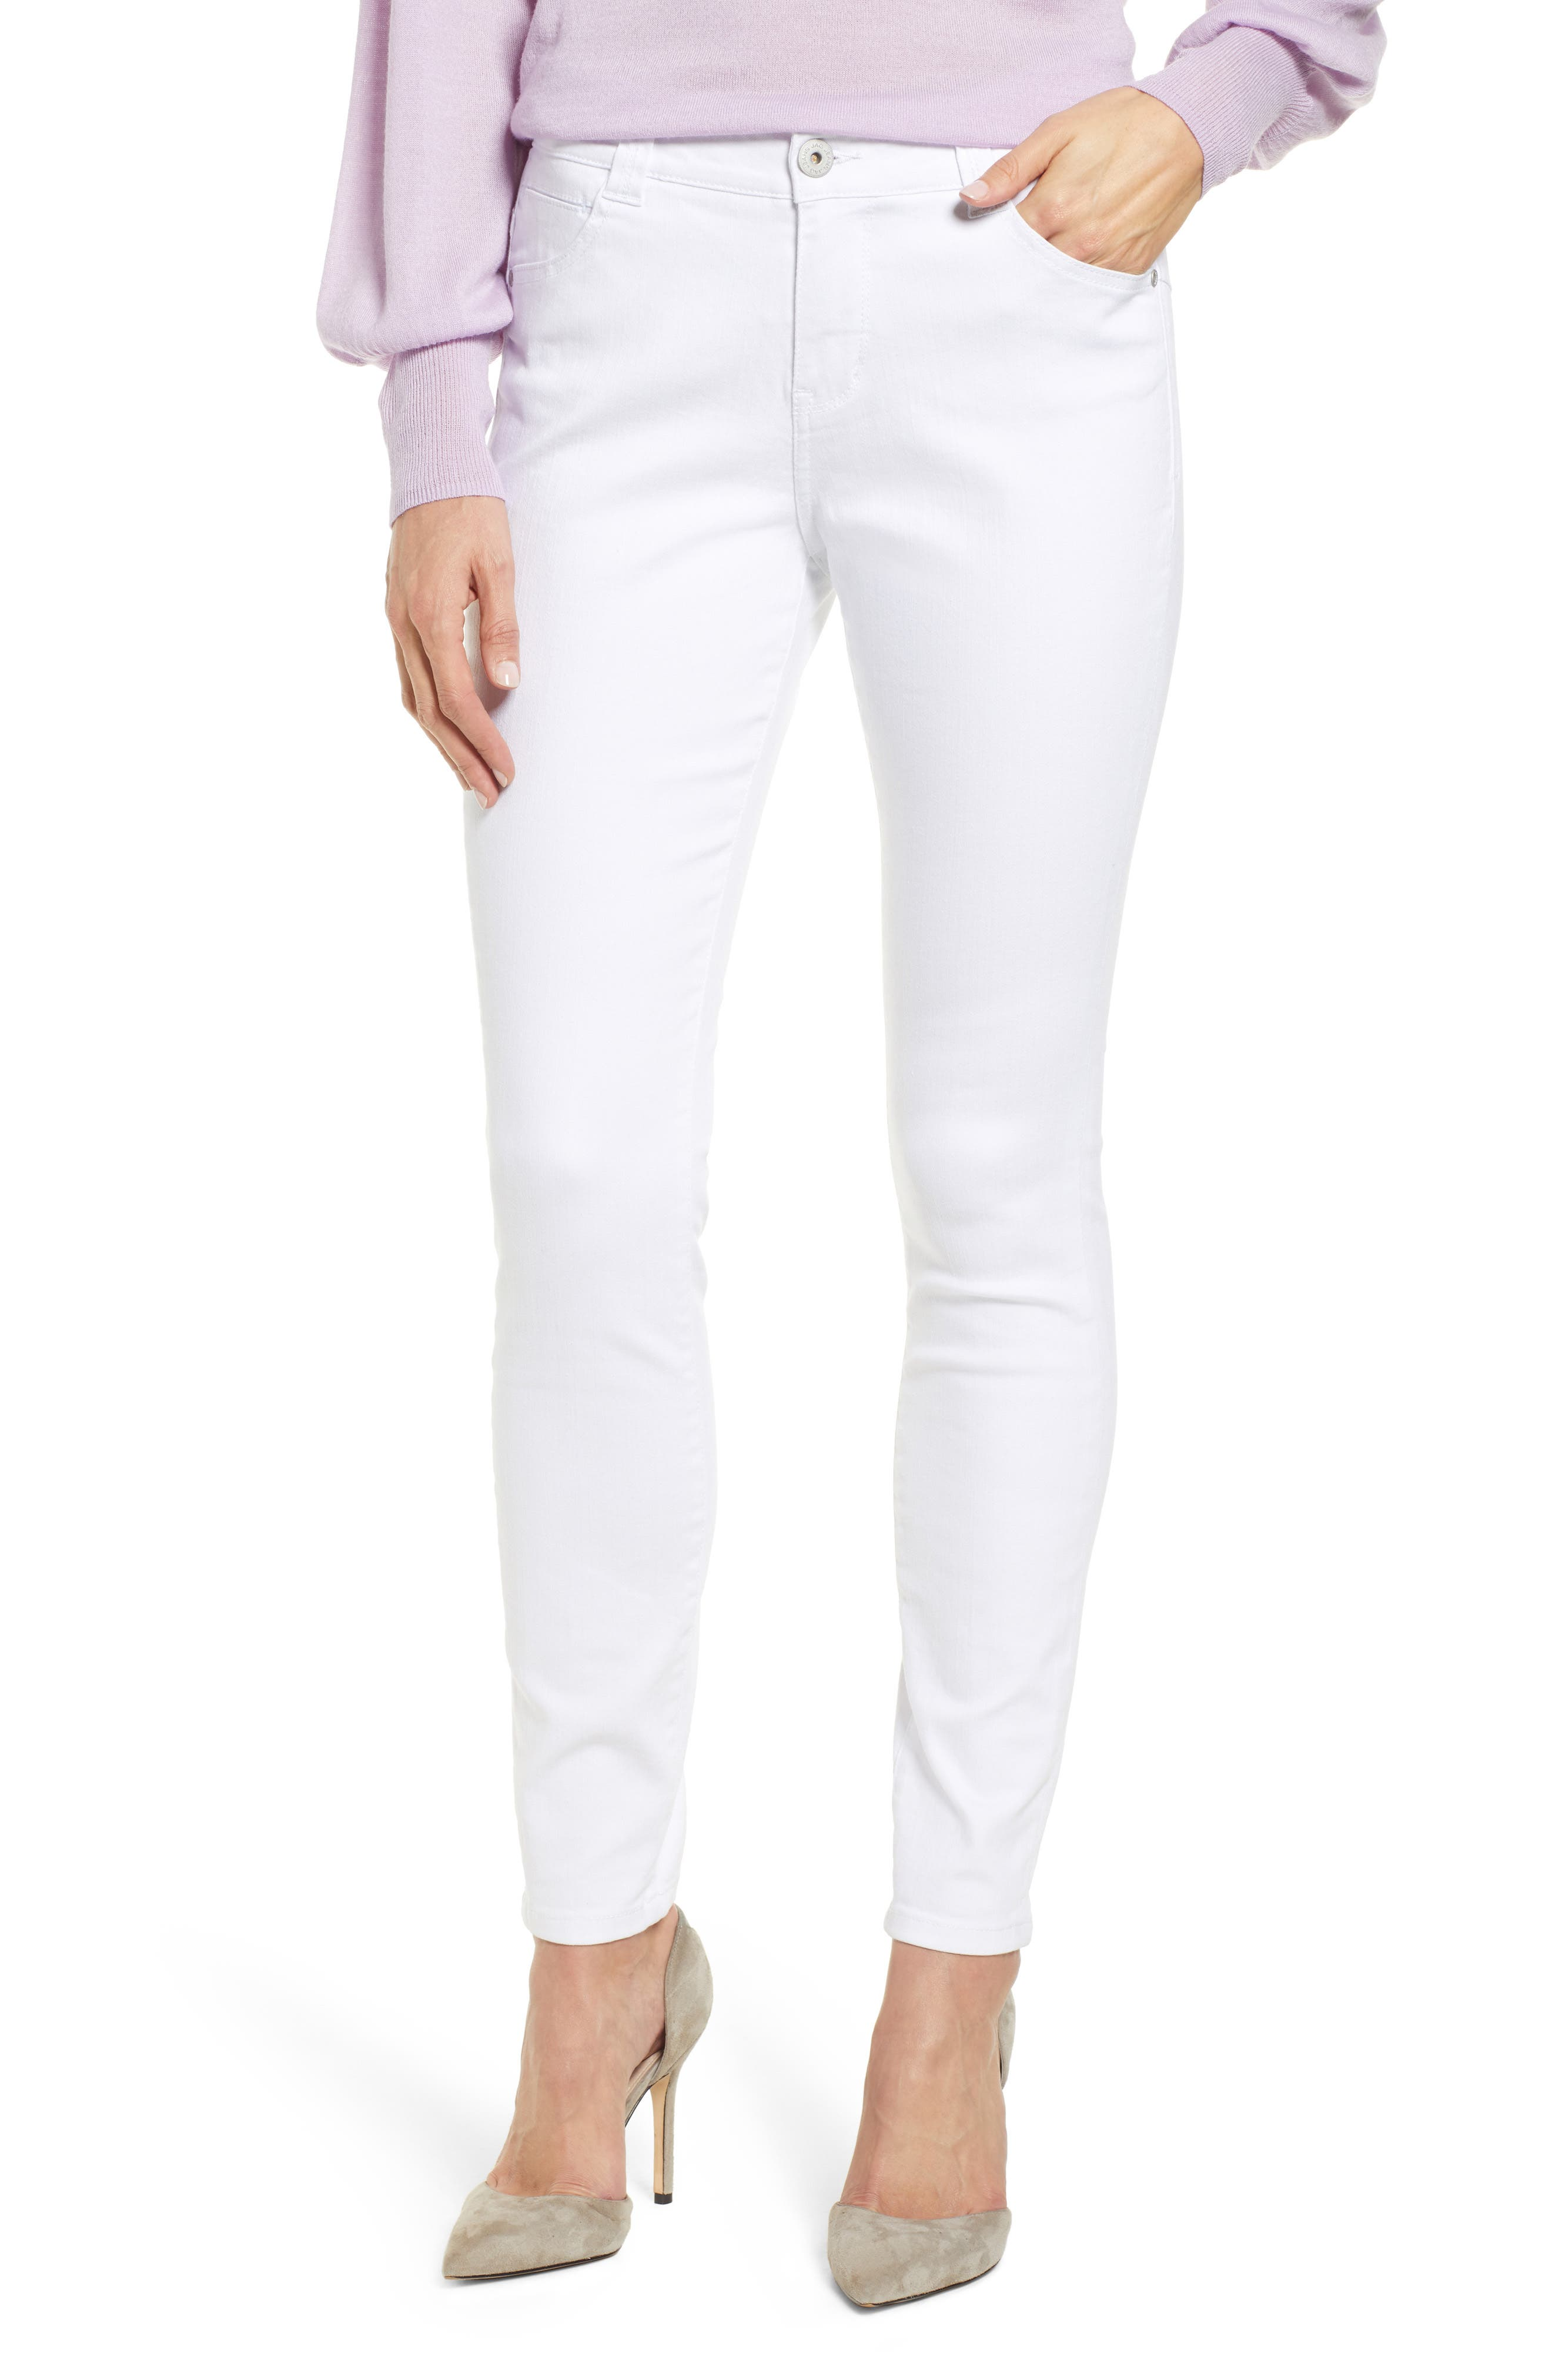 Cecilia High Waist Skinny Jeans in White